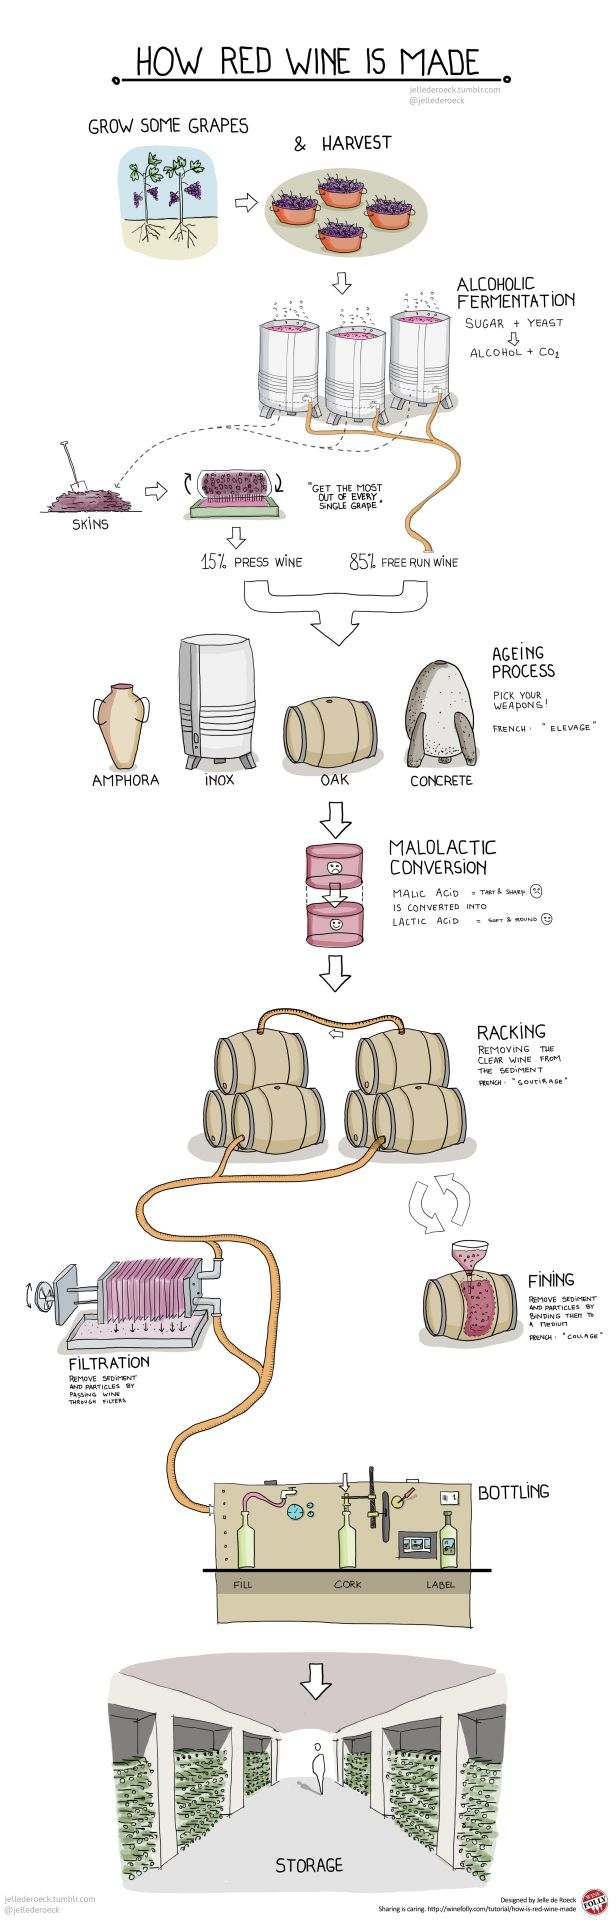 How red wine is made.